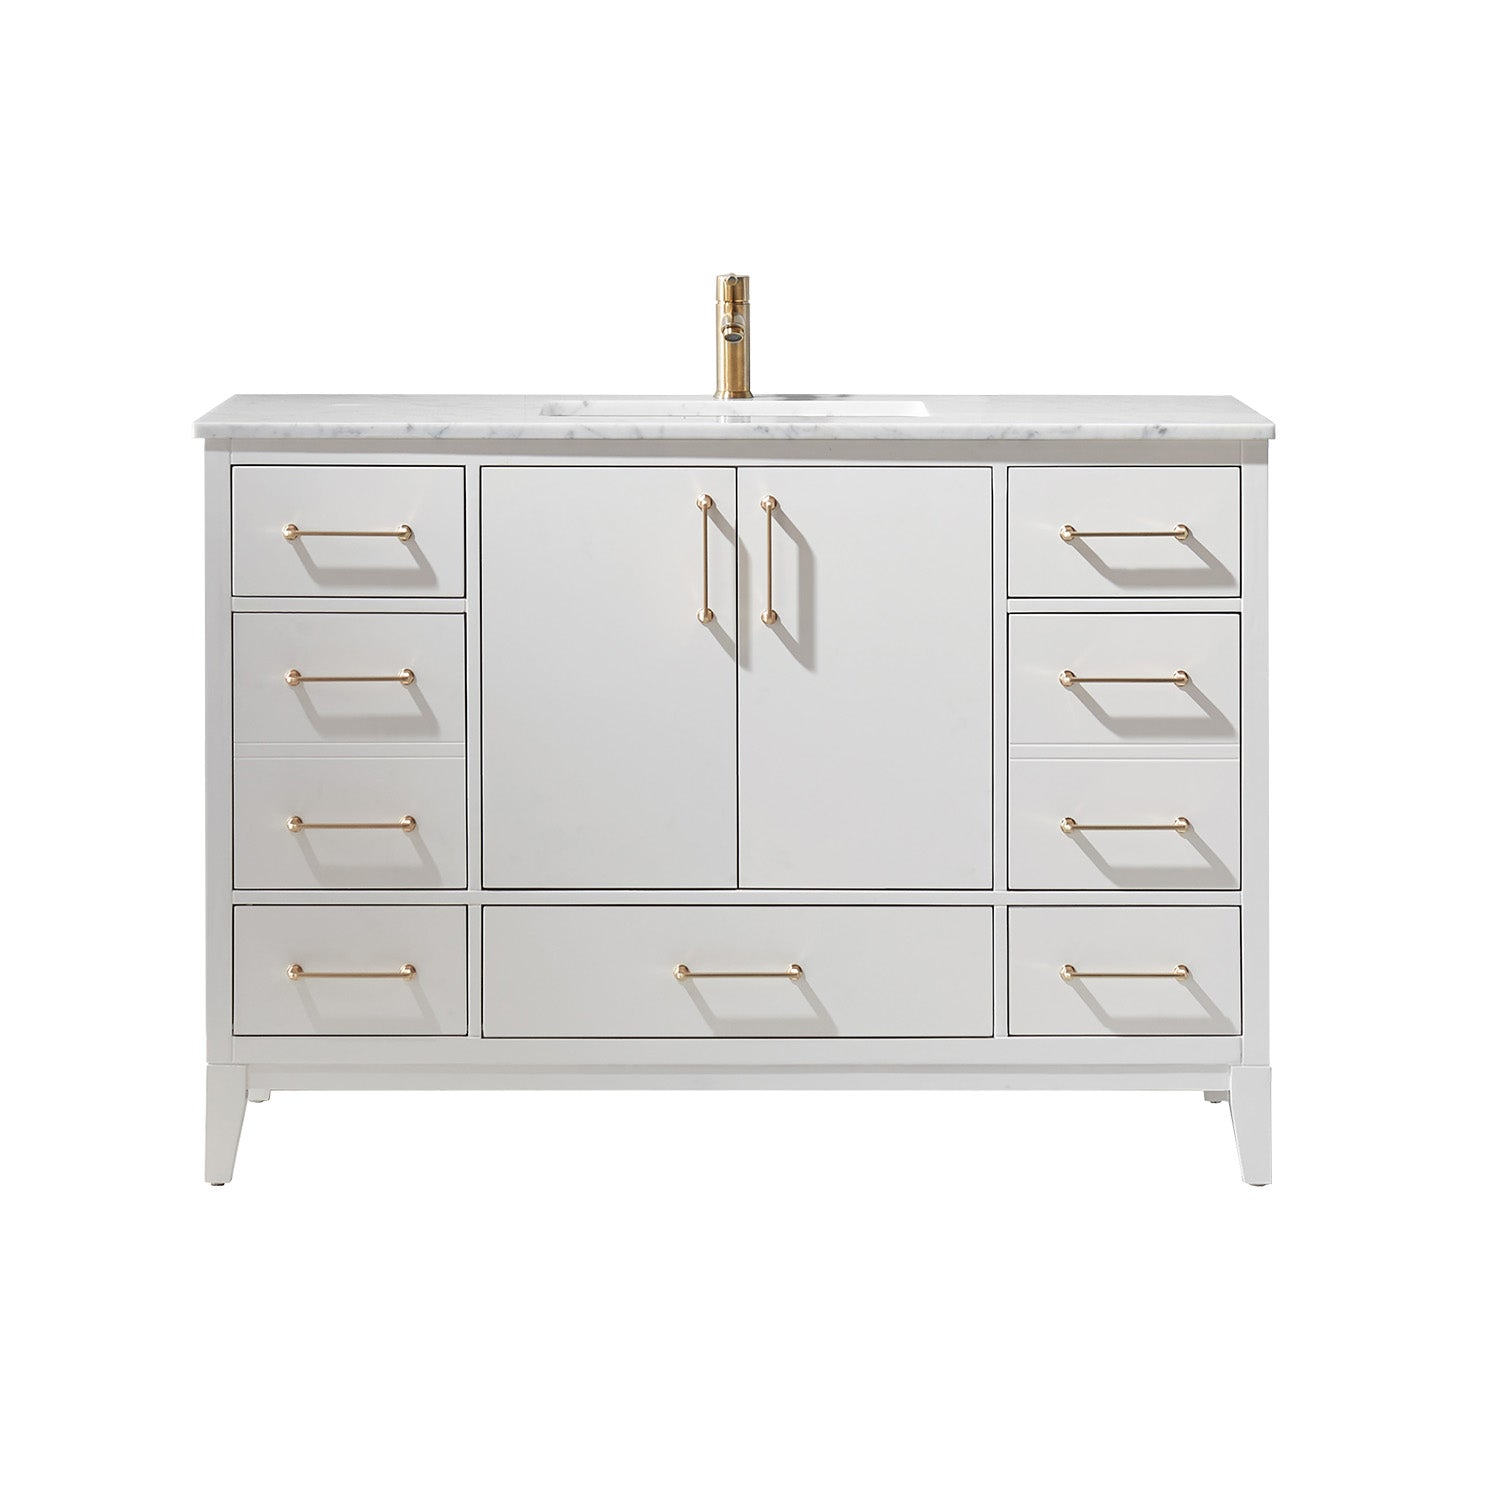 "Sutton 48"" Single Bathroom Vanity Set in White and Carrara White Marble Countertop without Mirror"